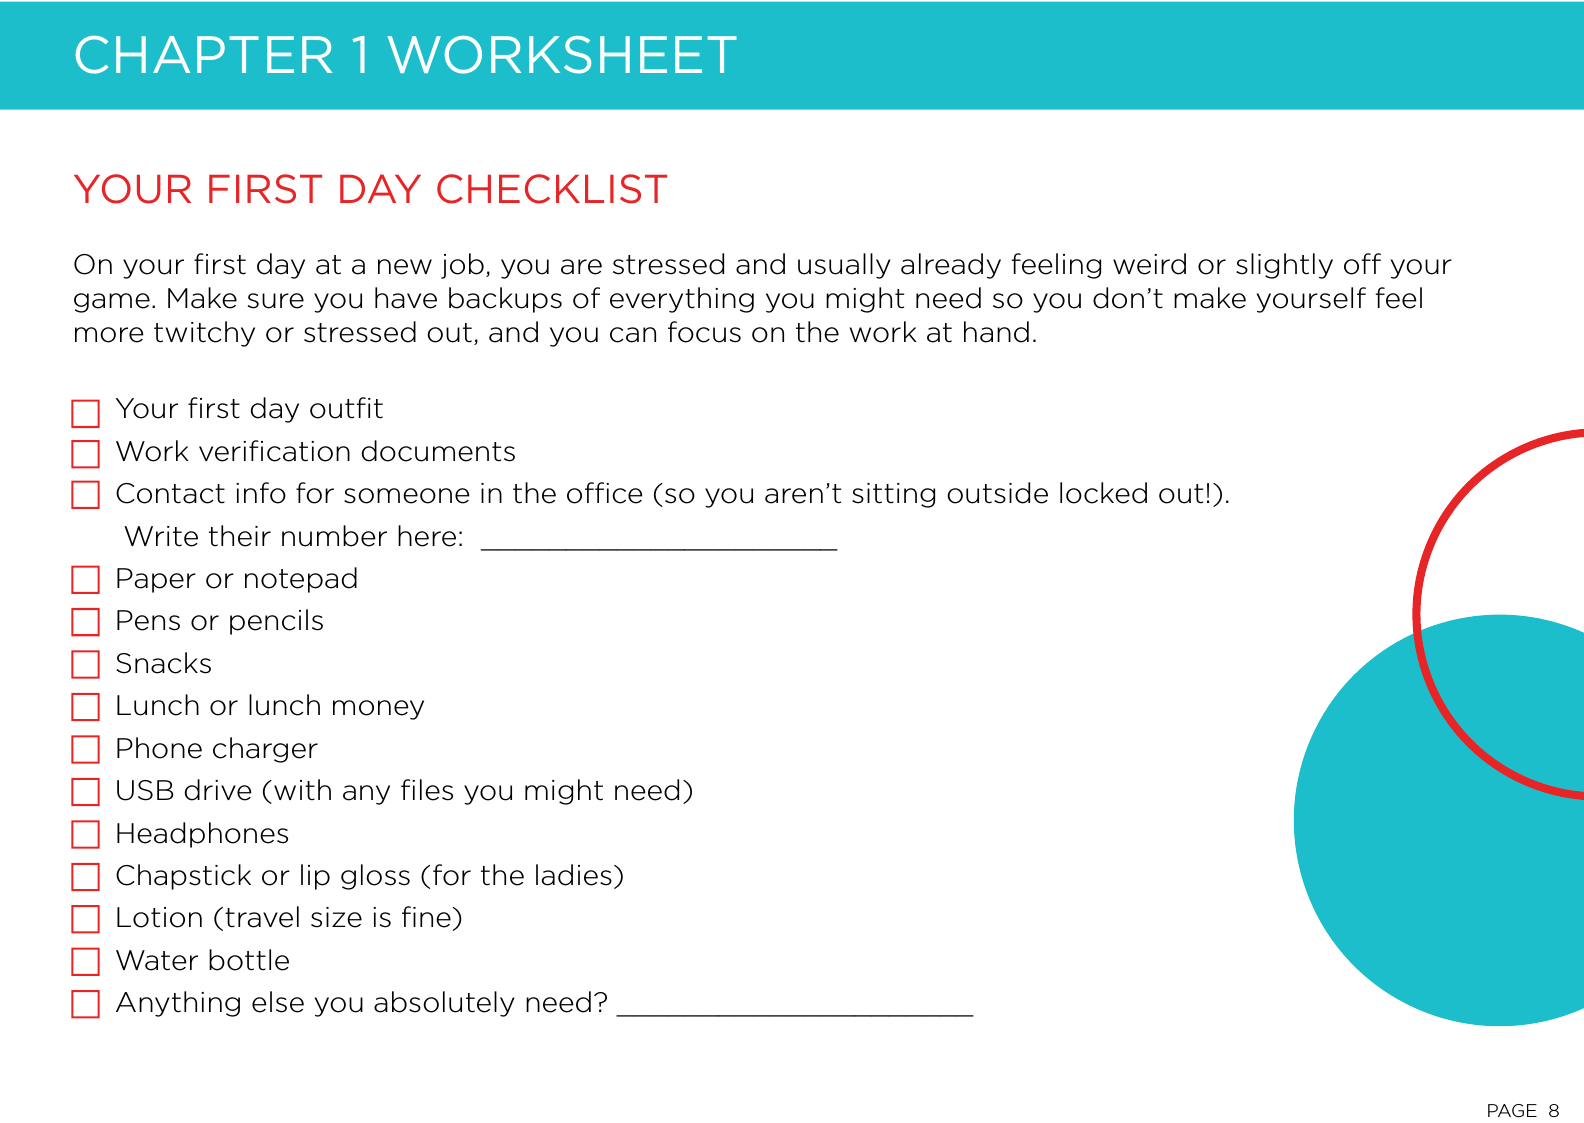 Chapter 1 Worksheet - Being New at Work: A Guide for Mastering the ...